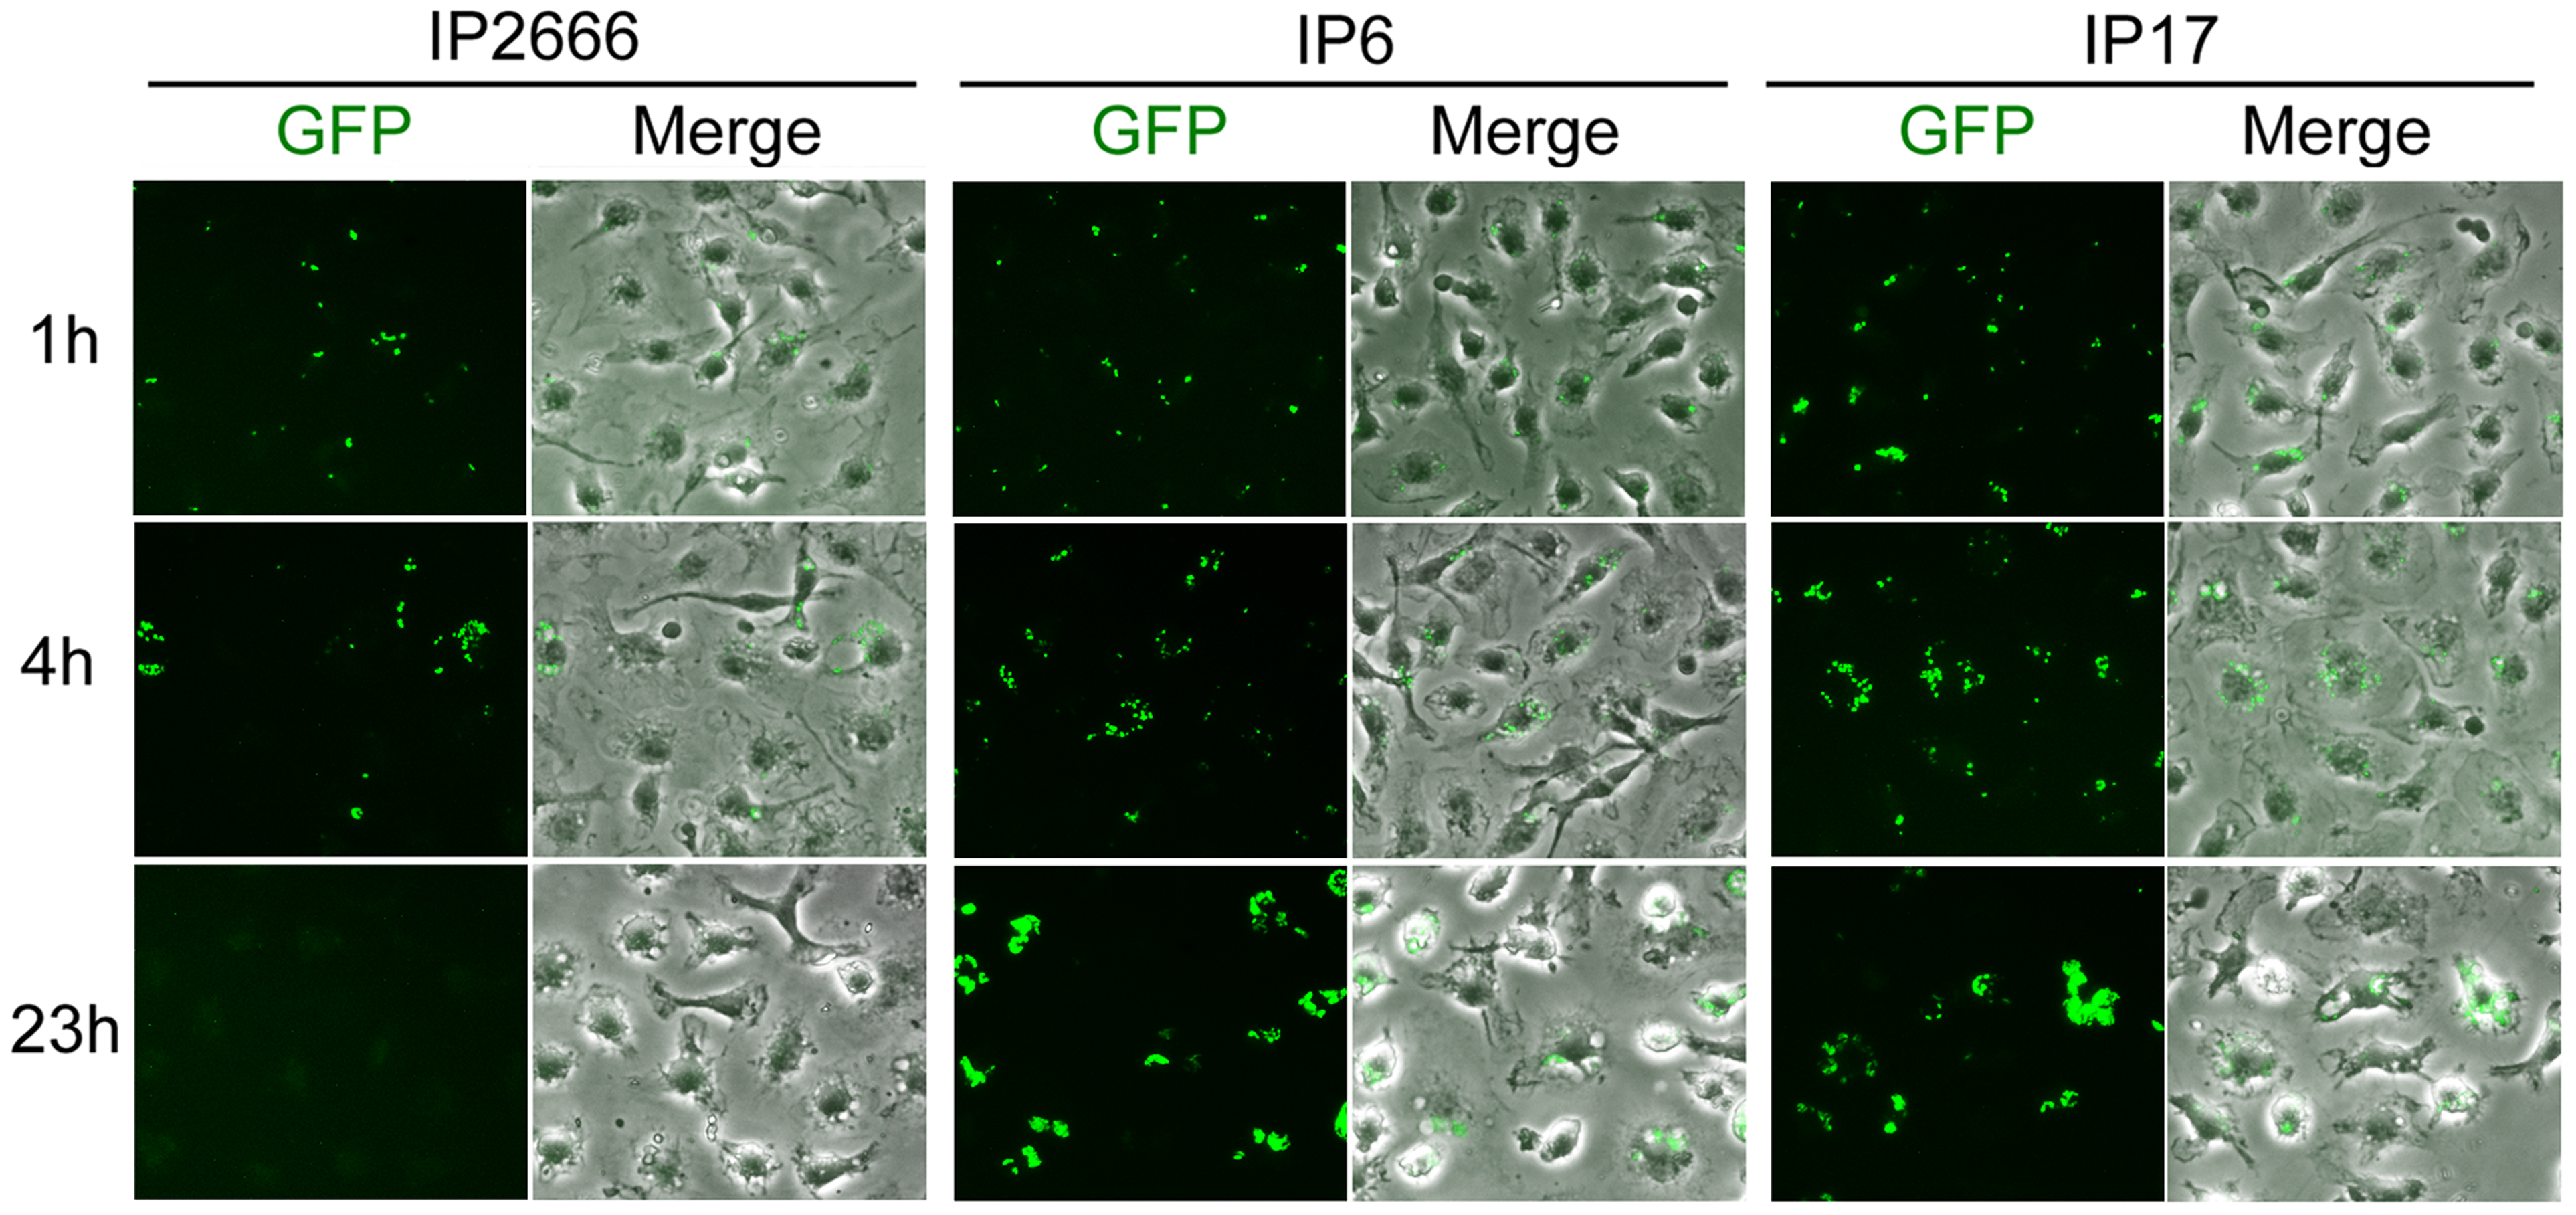 Comparison of different <i>Y. pseudotuberculosis</i> strains for survival inside macrophages as determined by fluorescence microcopy.